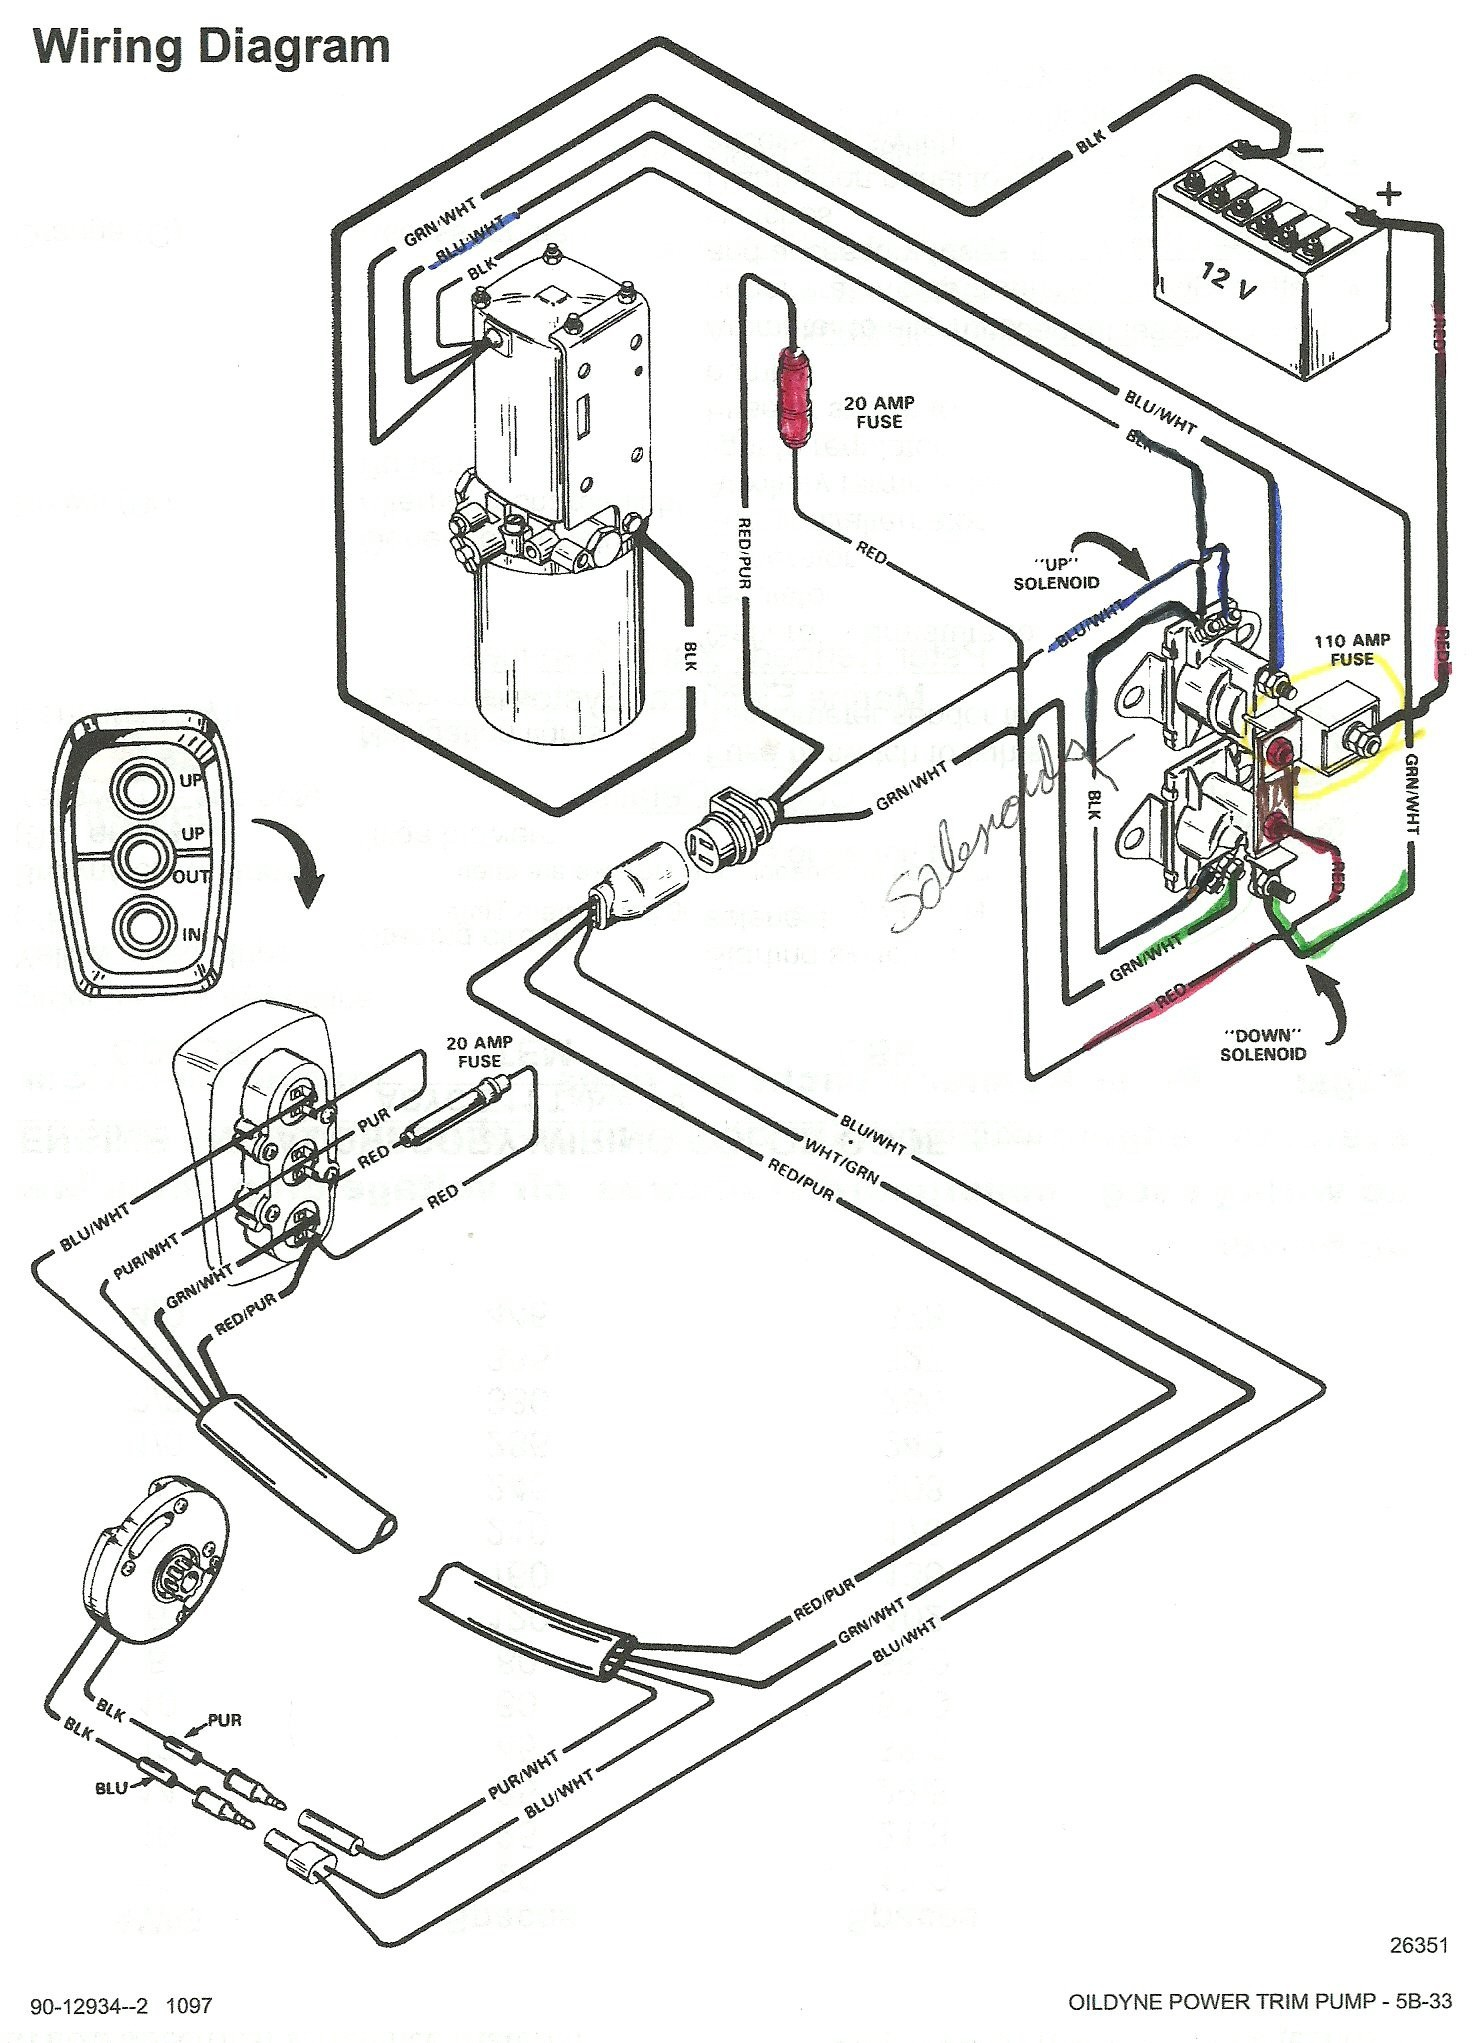 yamaha outboard tilt and trim gauge wiring diagram wiring diagrams cks  mercruiser trim pump wiring wiring diagram yamaha tilt and trim parts yamaha outboard tilt and trim gauge wiring diagram